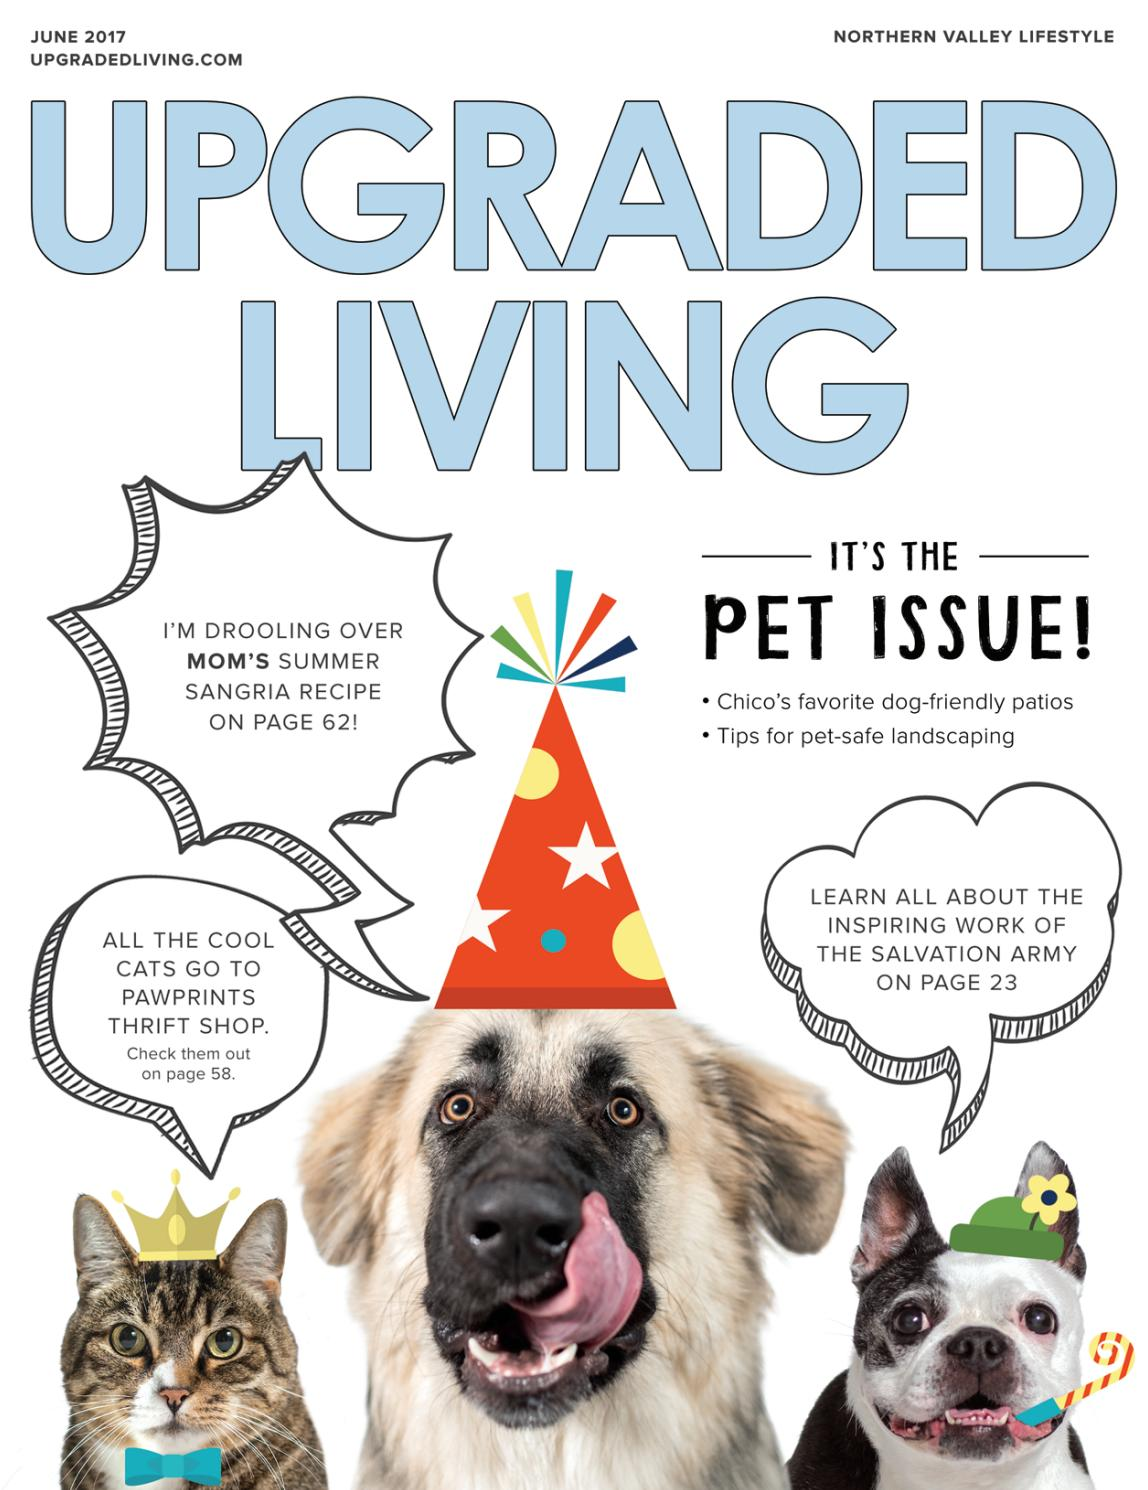 Upgraded Living June 2017 by Upgraded Living - issuu